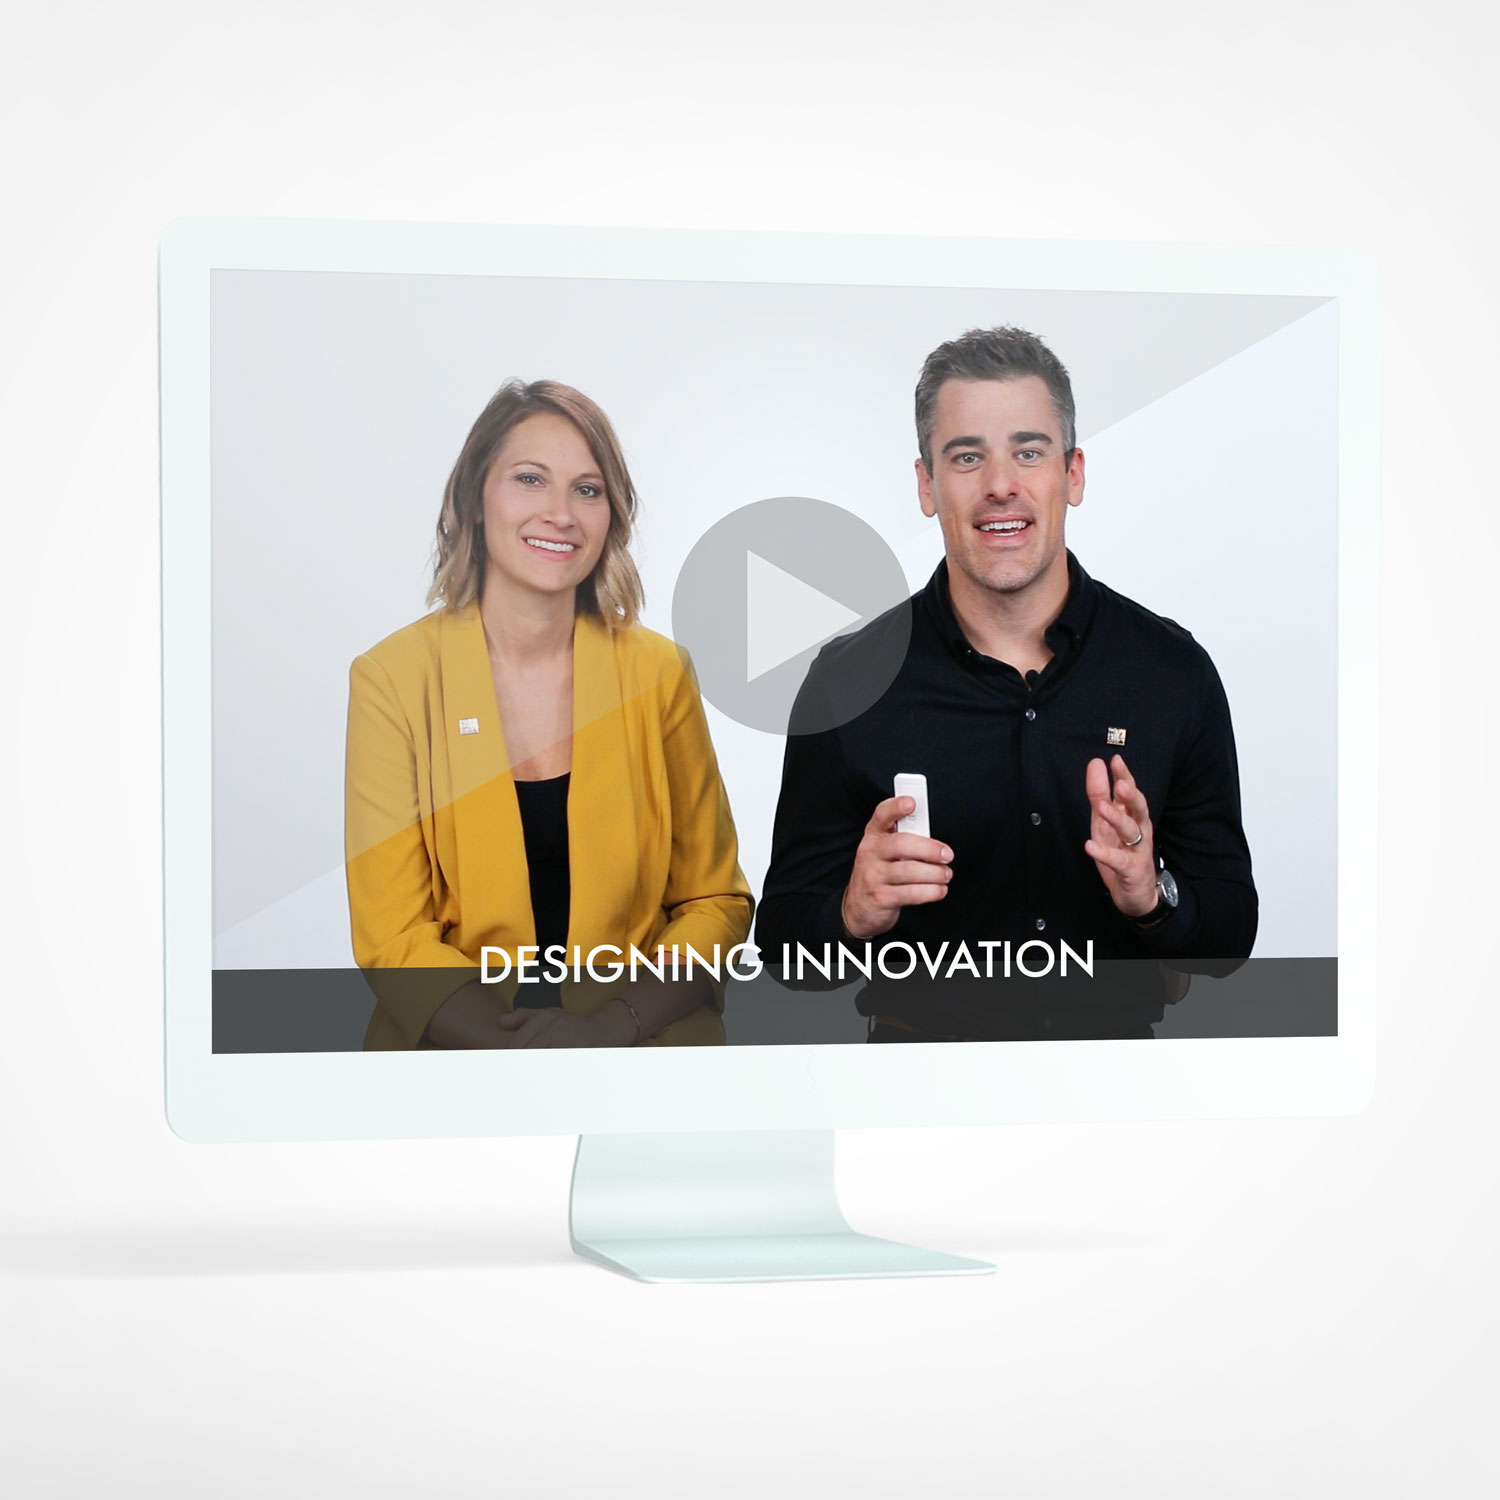 Designing Innovation Online Training - Launching May 6